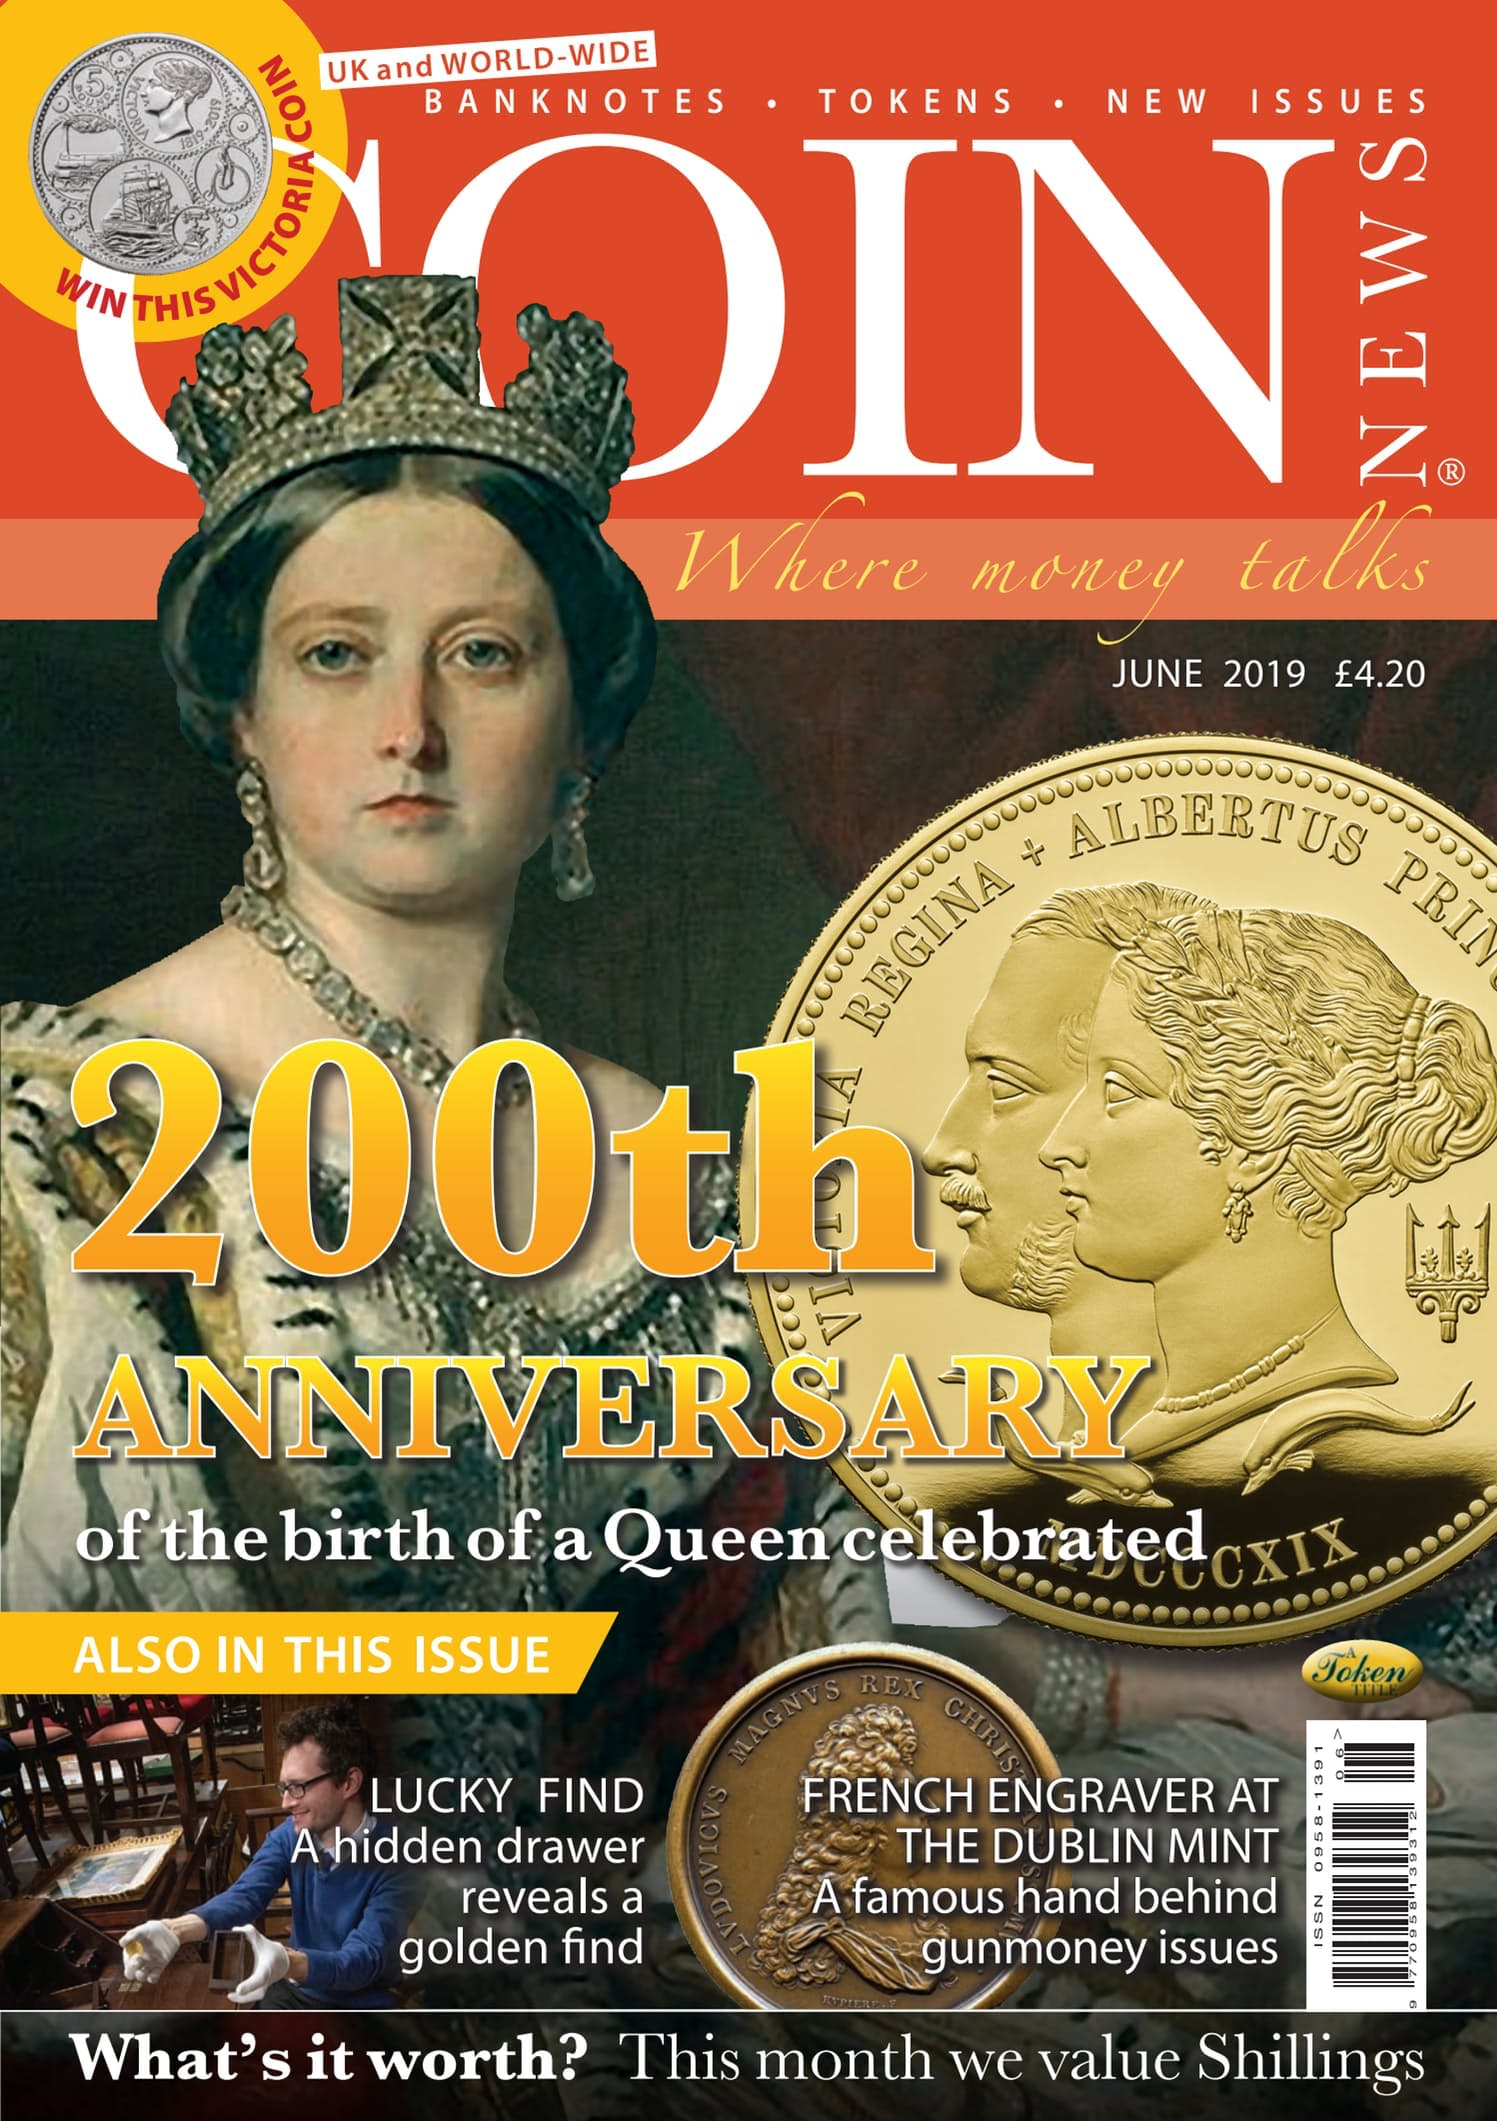 The front cover of Coin News, June 2019 - Volume 56, Number 6